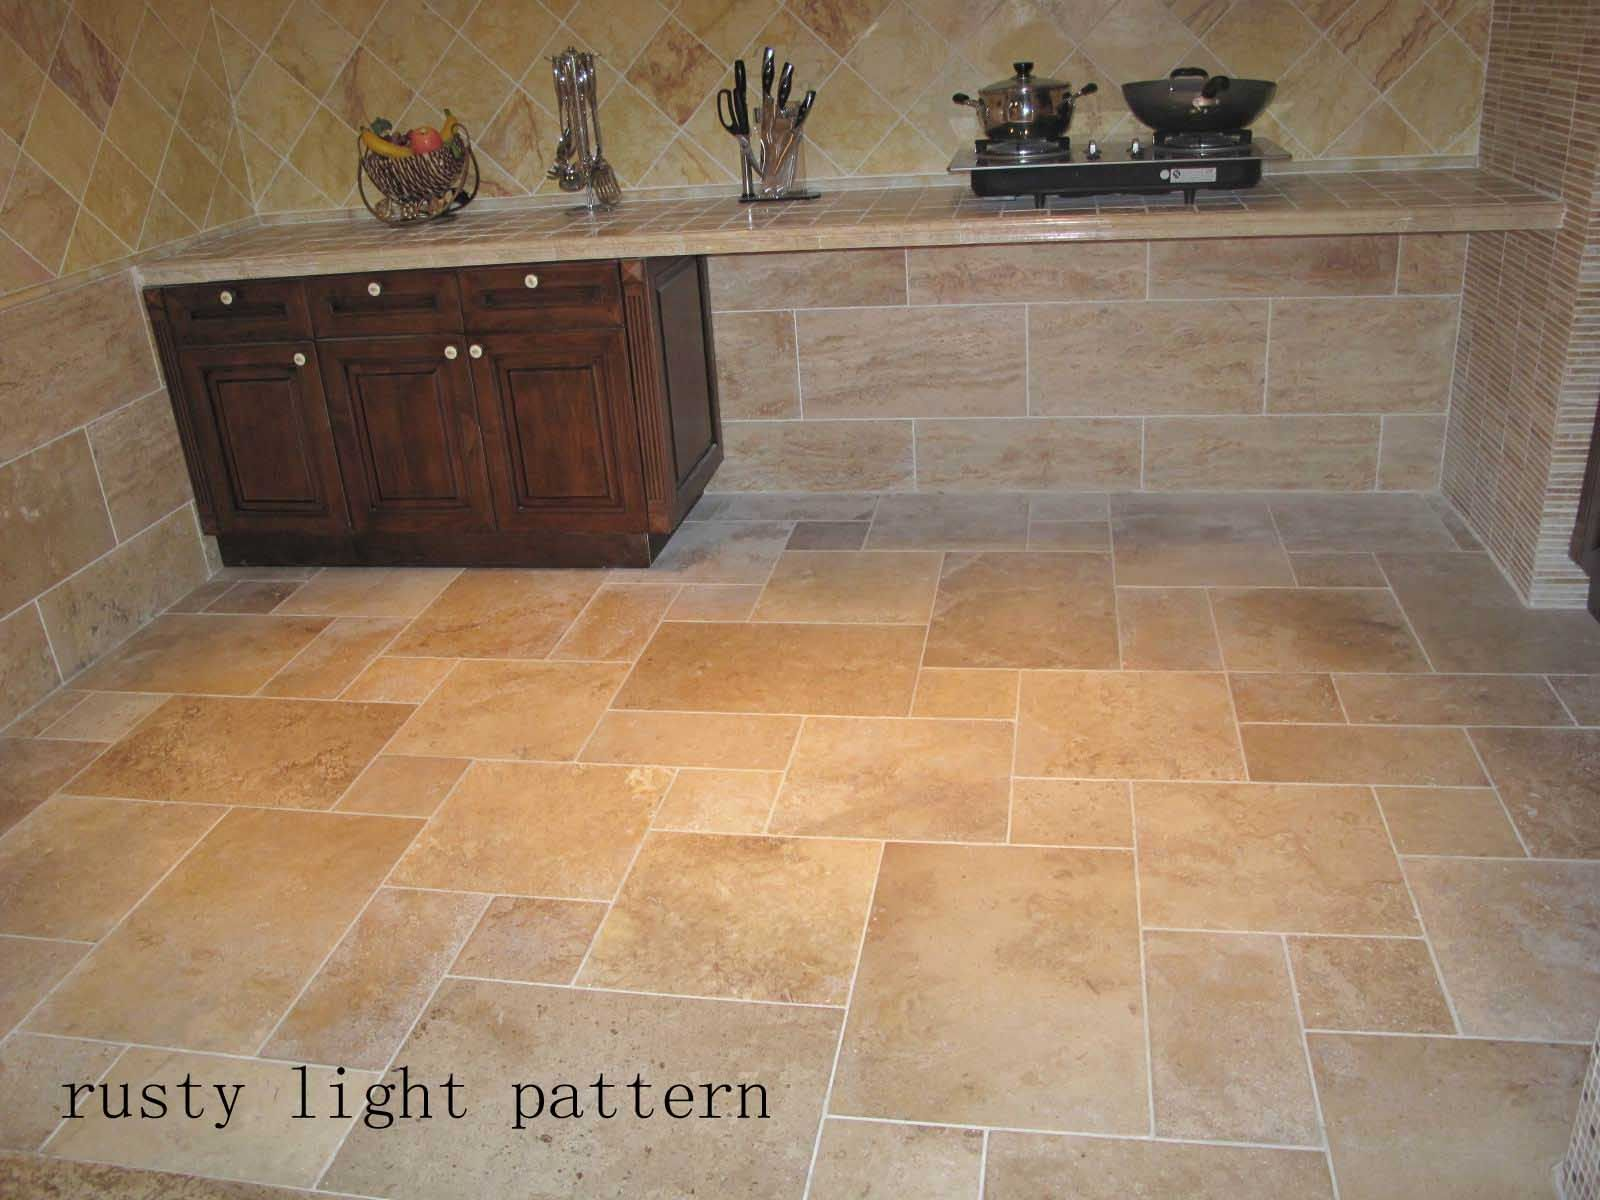 Travertine tile floor photos google search laundry room custom fabricated granite countertops and marble vanity tops how to seal travertine floor tiles doublecrazyfo Images